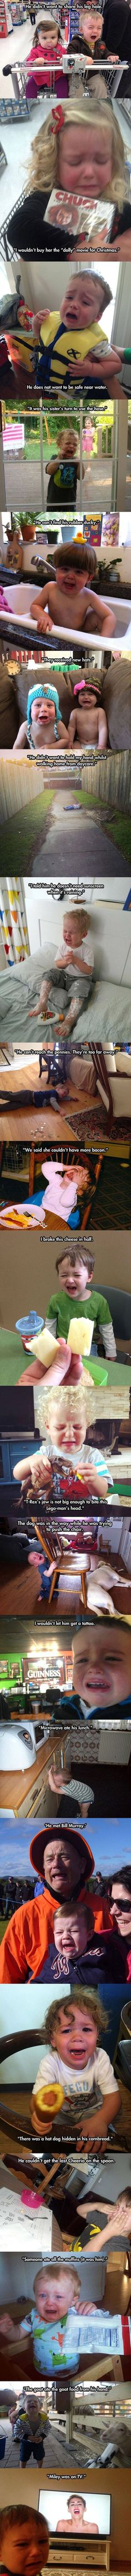 Humor Discover The reasons why these kids cry are hilarious Crazy Funny Memes, Really Funny Memes, Stupid Funny Memes, Funny Relatable Memes, Haha Funny, Funny Posts, Funny Cute, Funny Shit, Funny Stuff